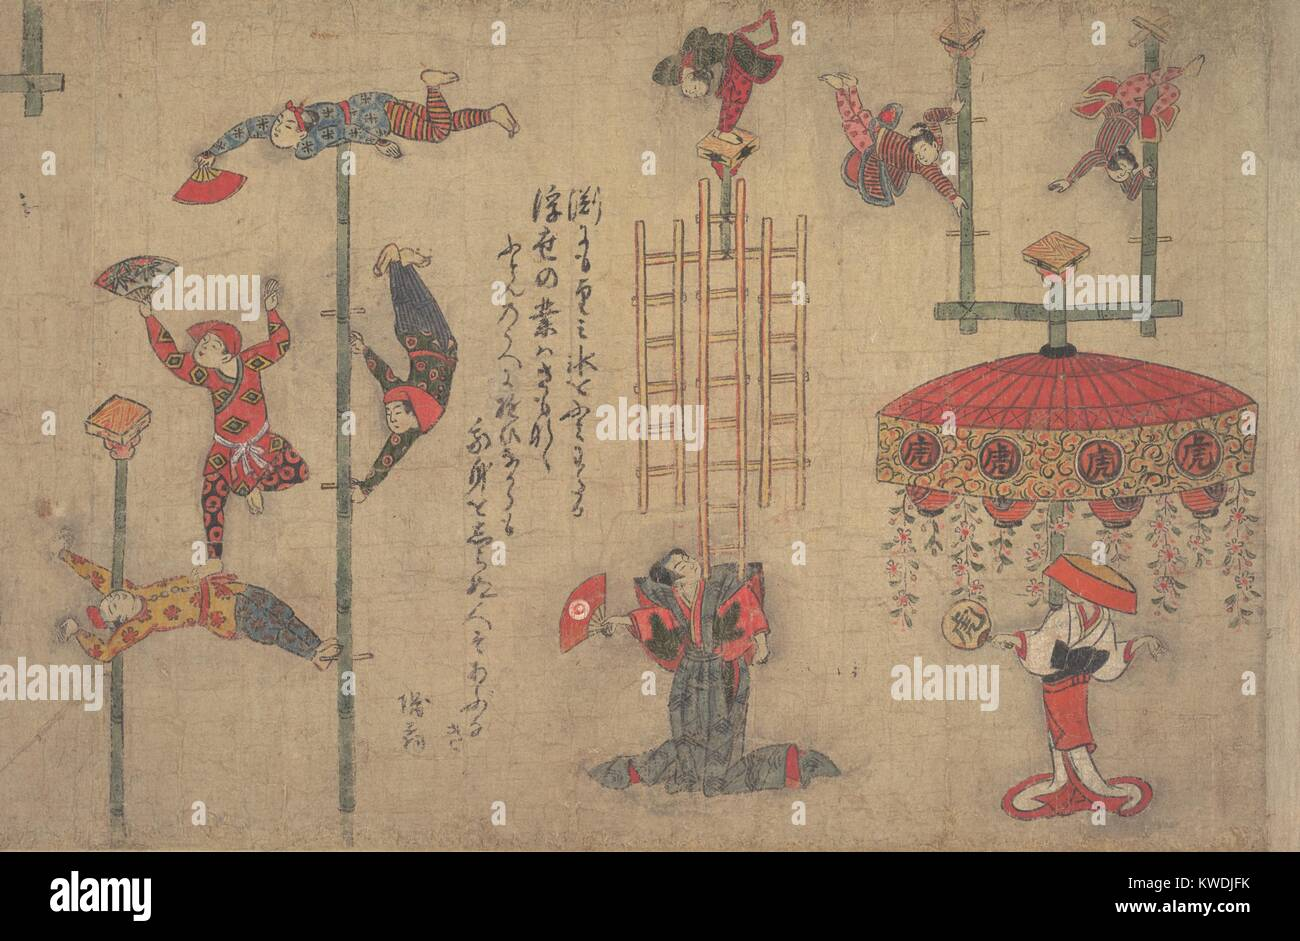 ACROBATS, 1880s, Japanese painting, ink and color on paper. Acrobats perform using bamboo poles and other props - Stock Image